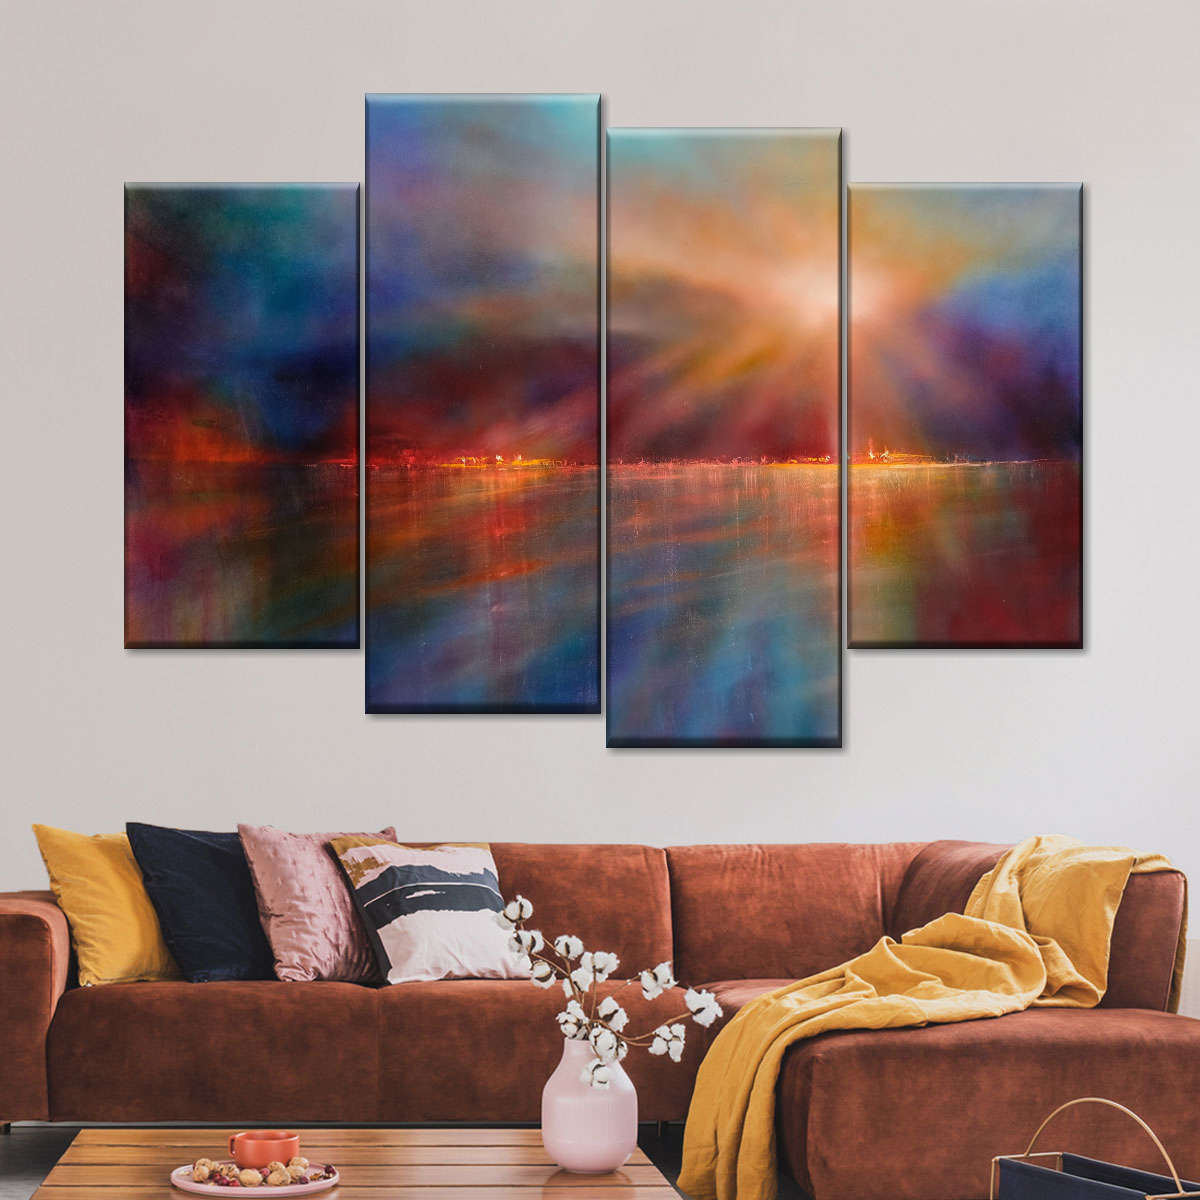 Another Morning Multi Panel Canvas Wall Art